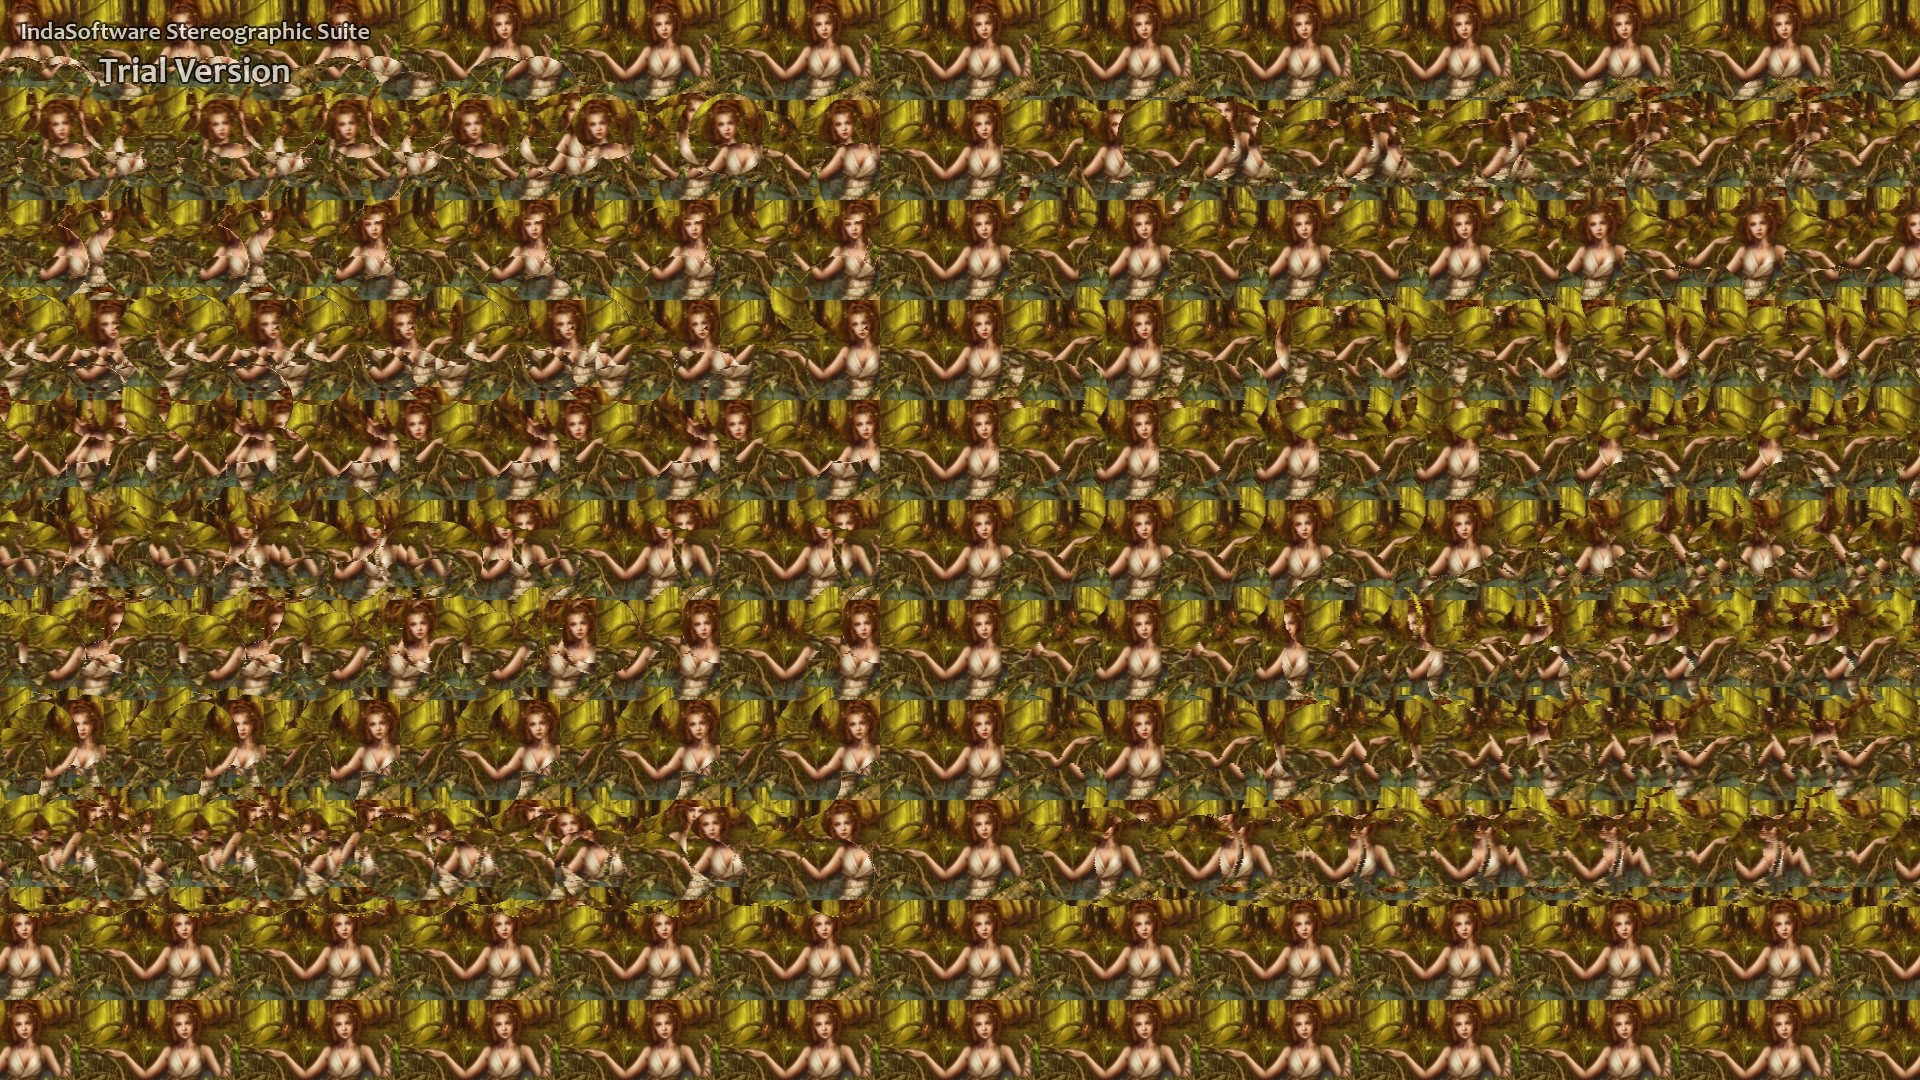 Stereogram Wallpapers (51+ Images